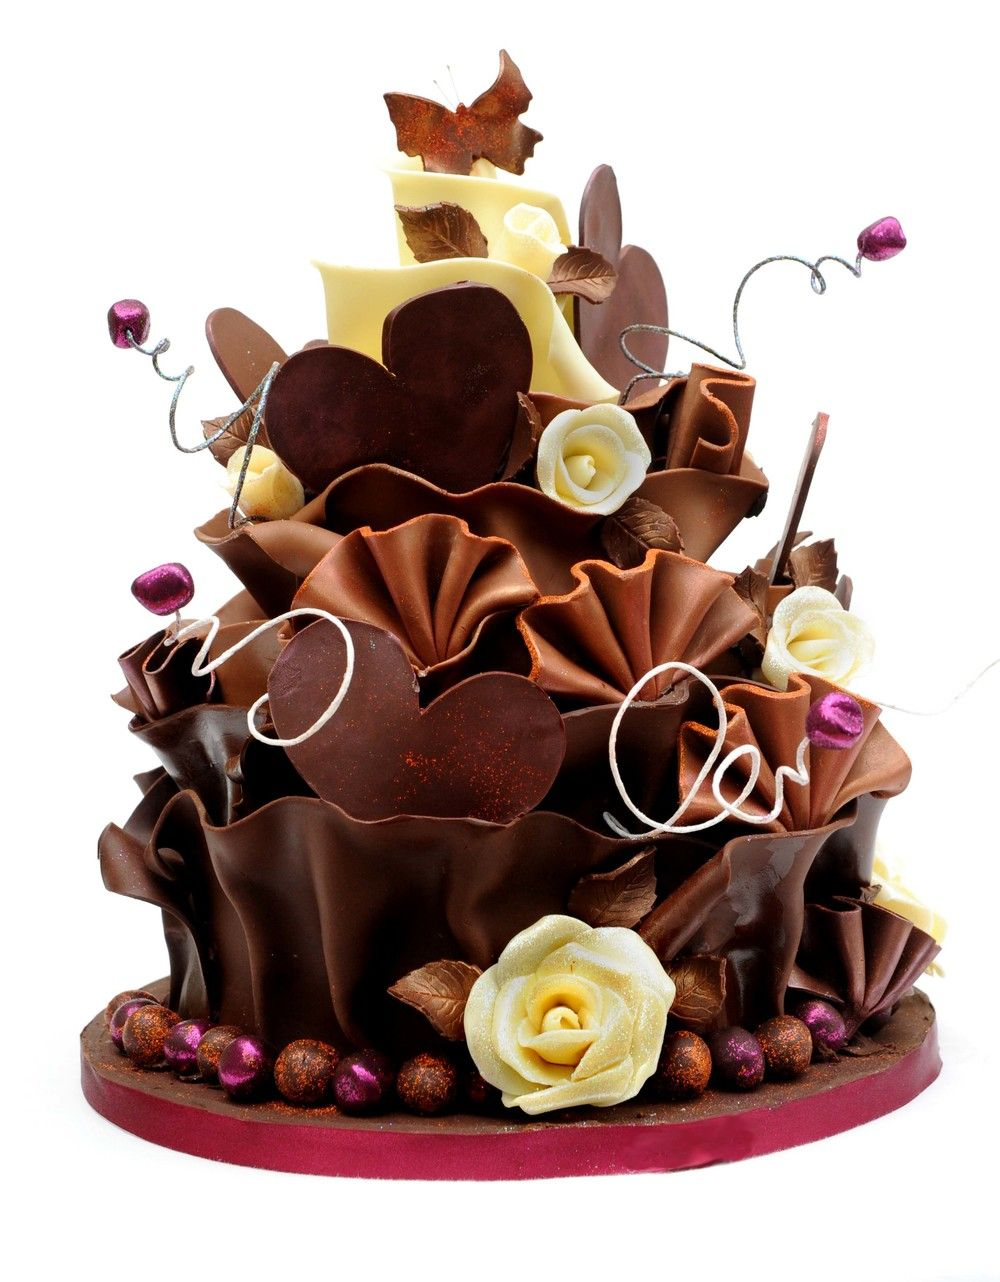 Most Beautiful Birthday Cake Images : Most Beautiful Chocolate Birthday Cakes Ever Most ...